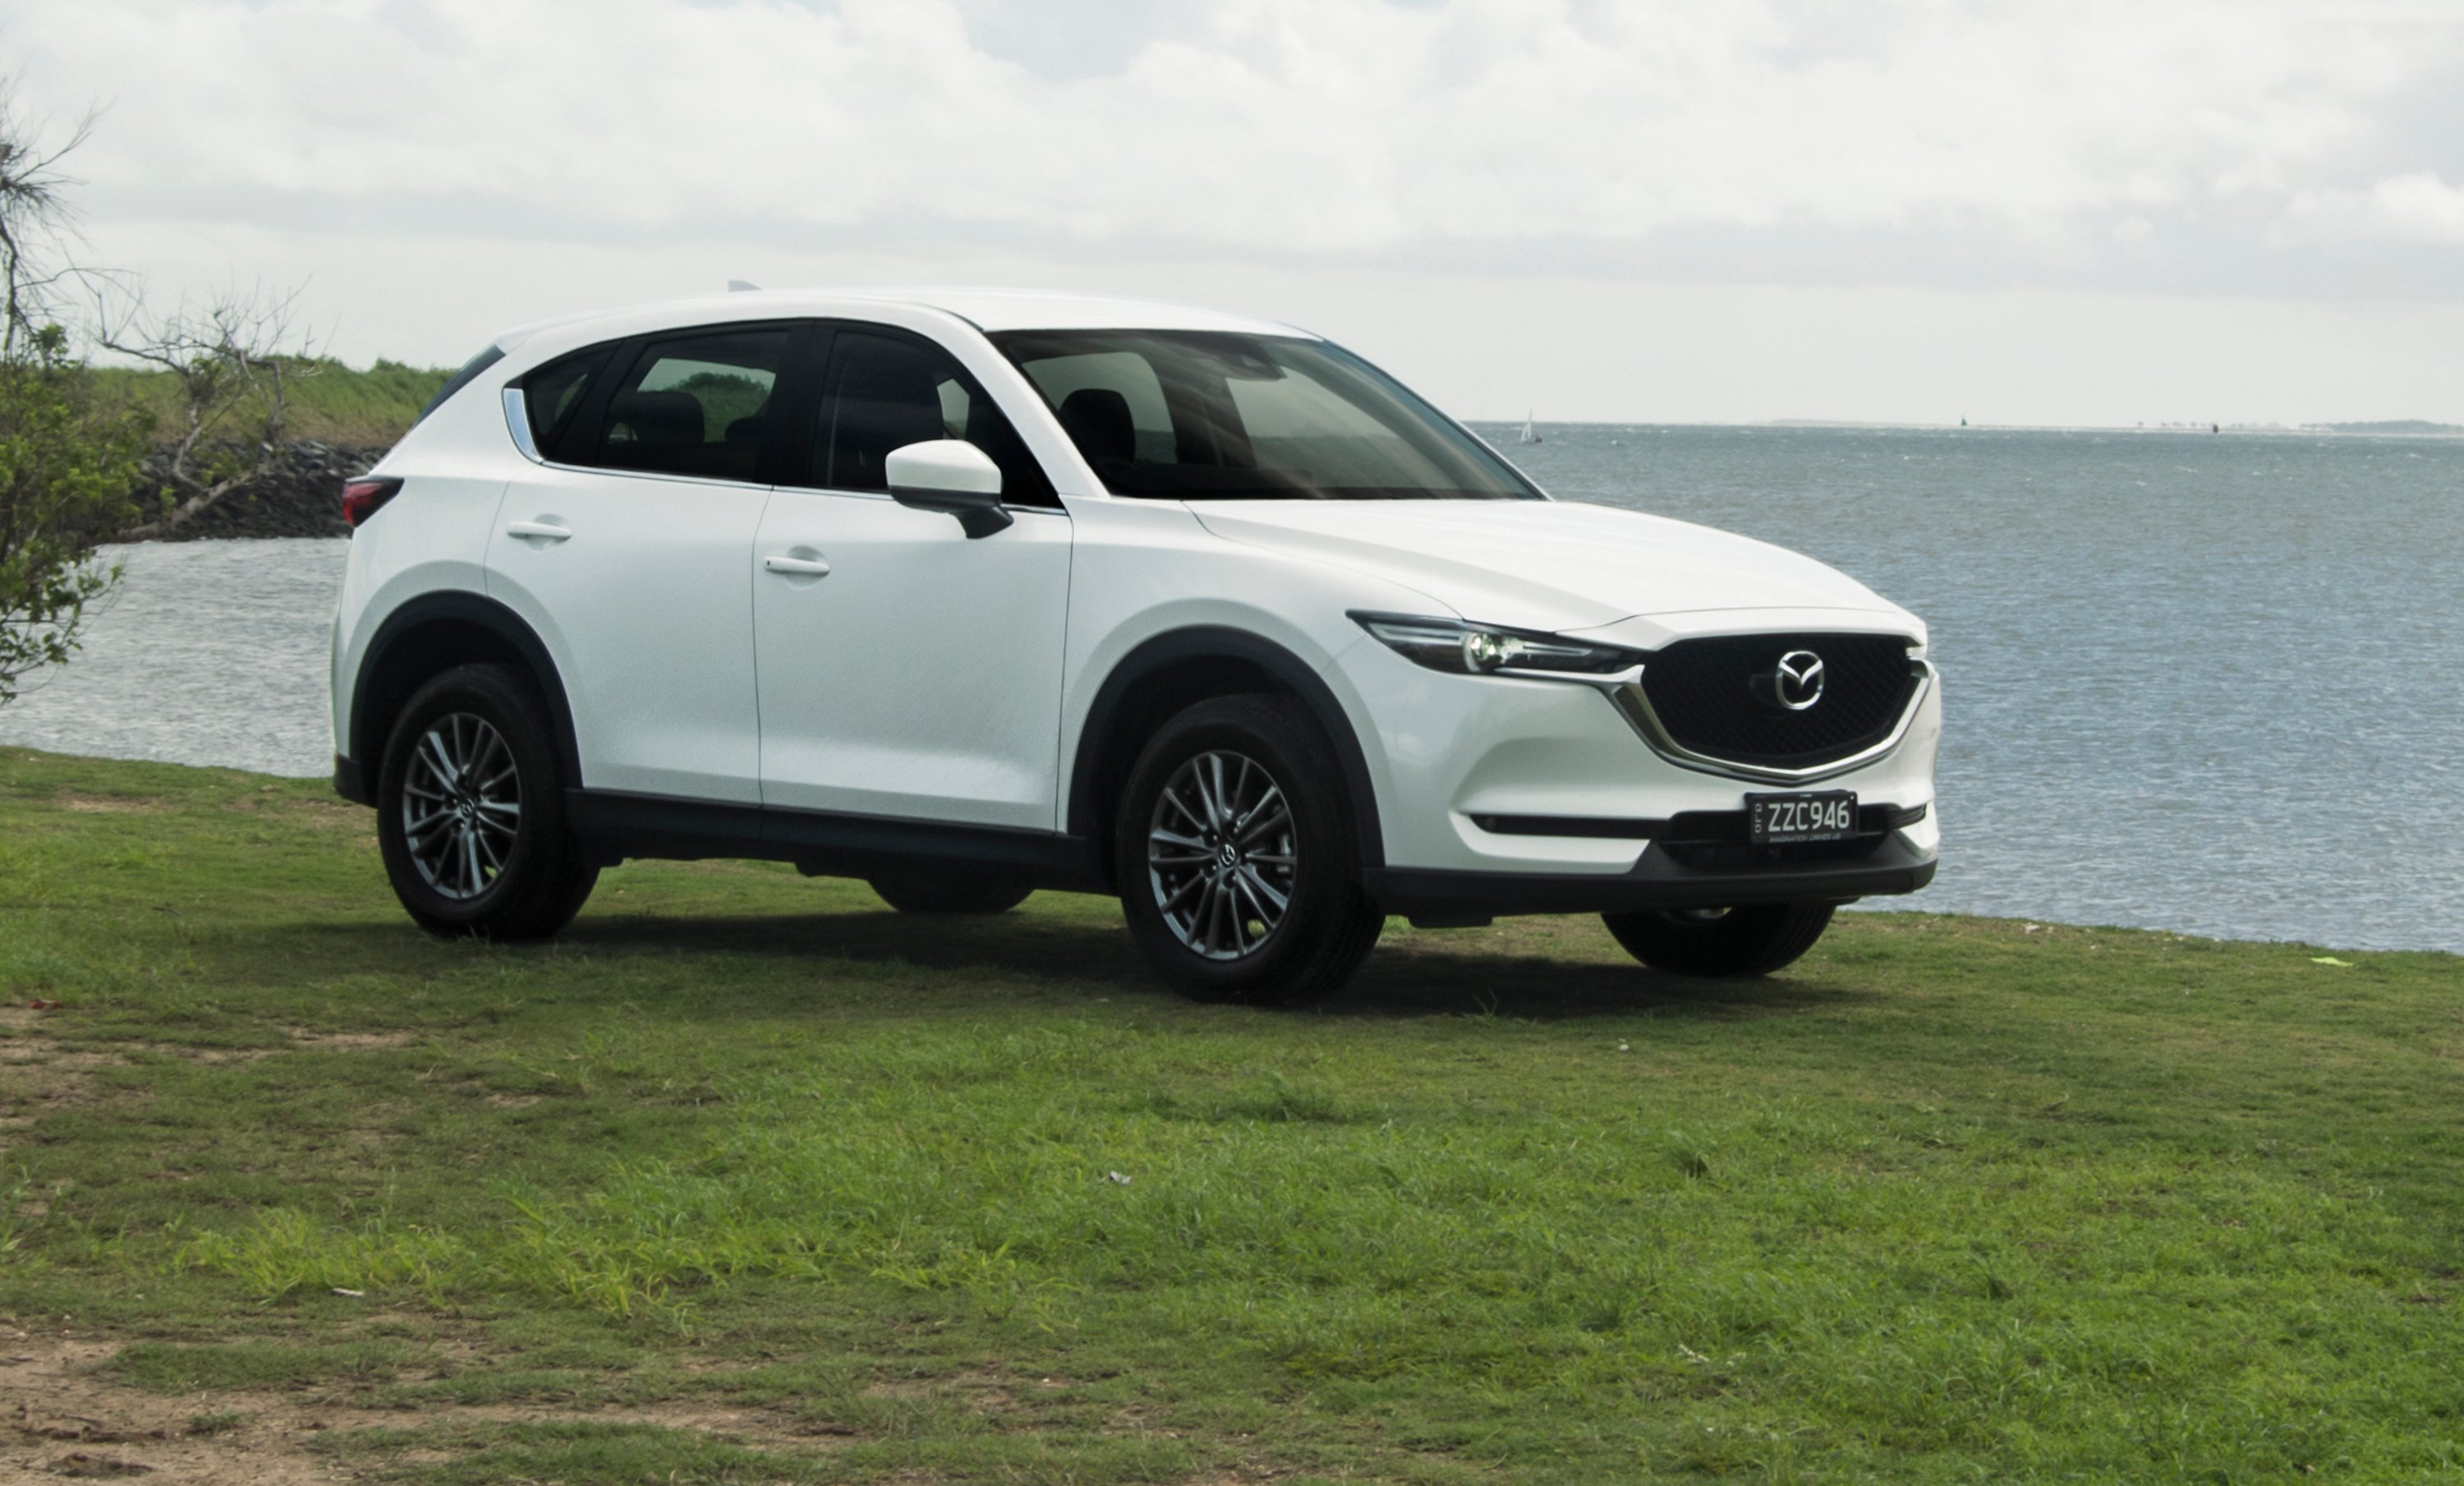 2013 mazda cx 5 2.5 review